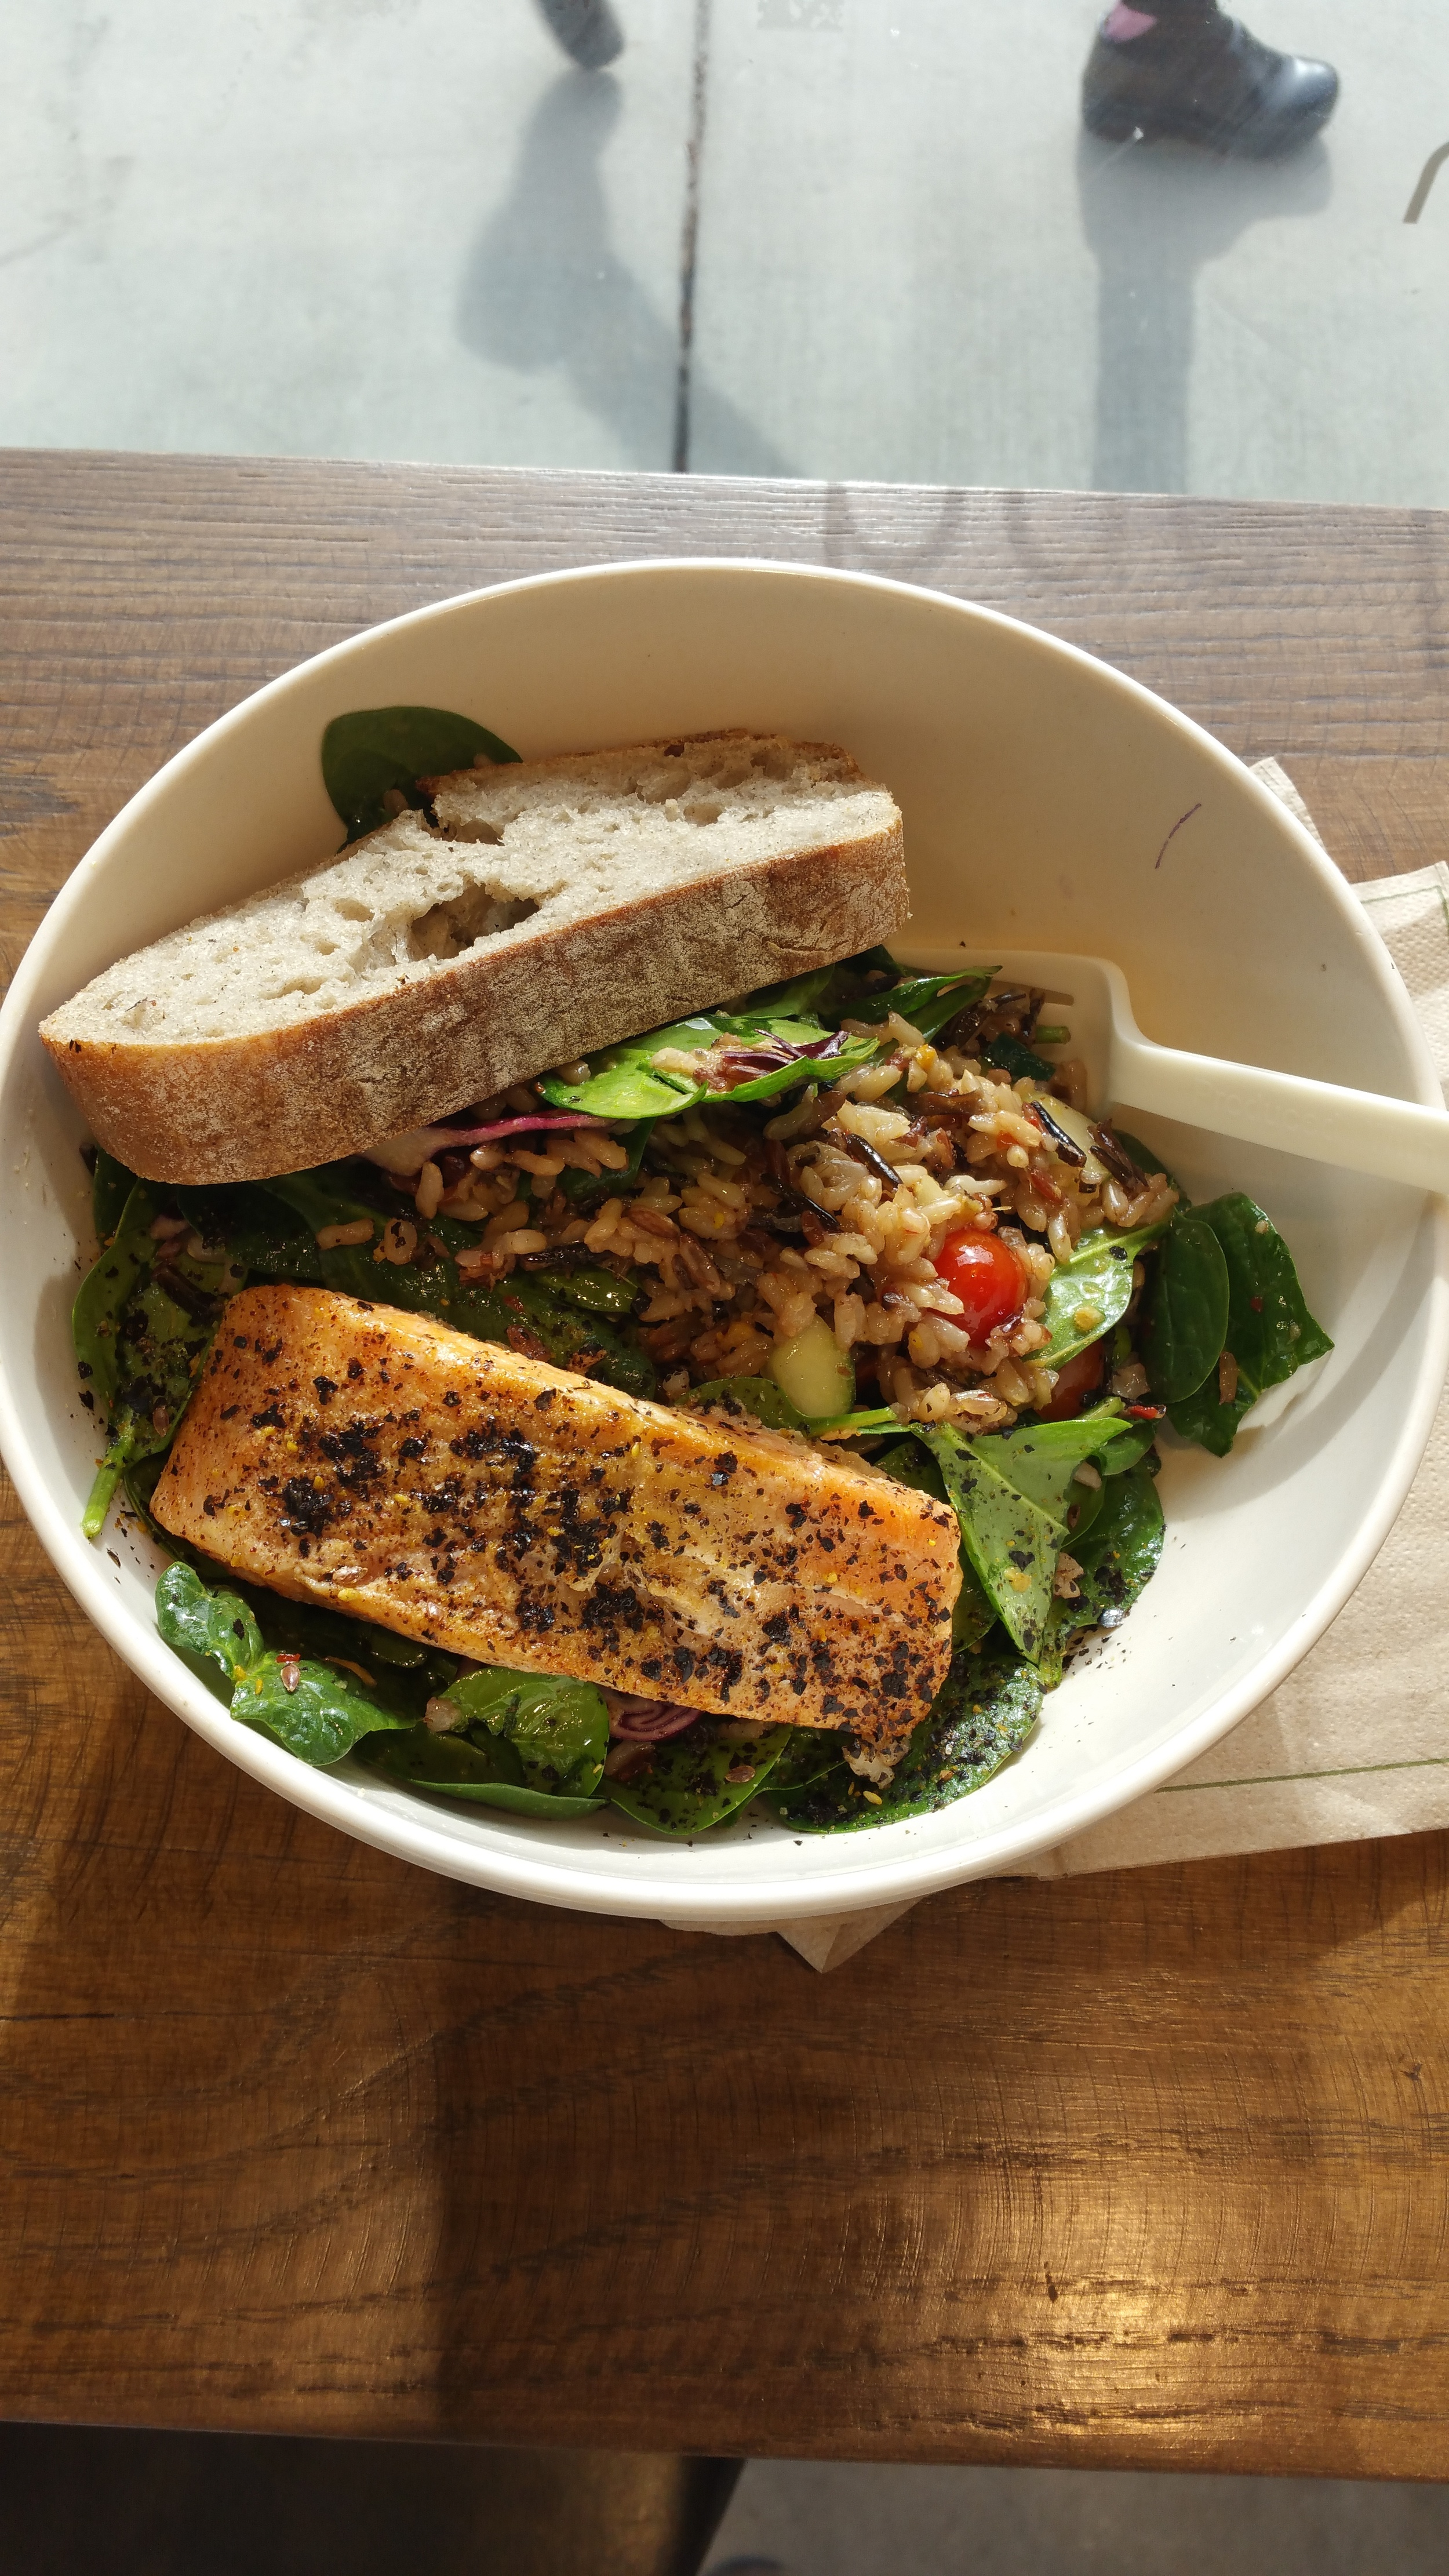 The Bento salad with bread